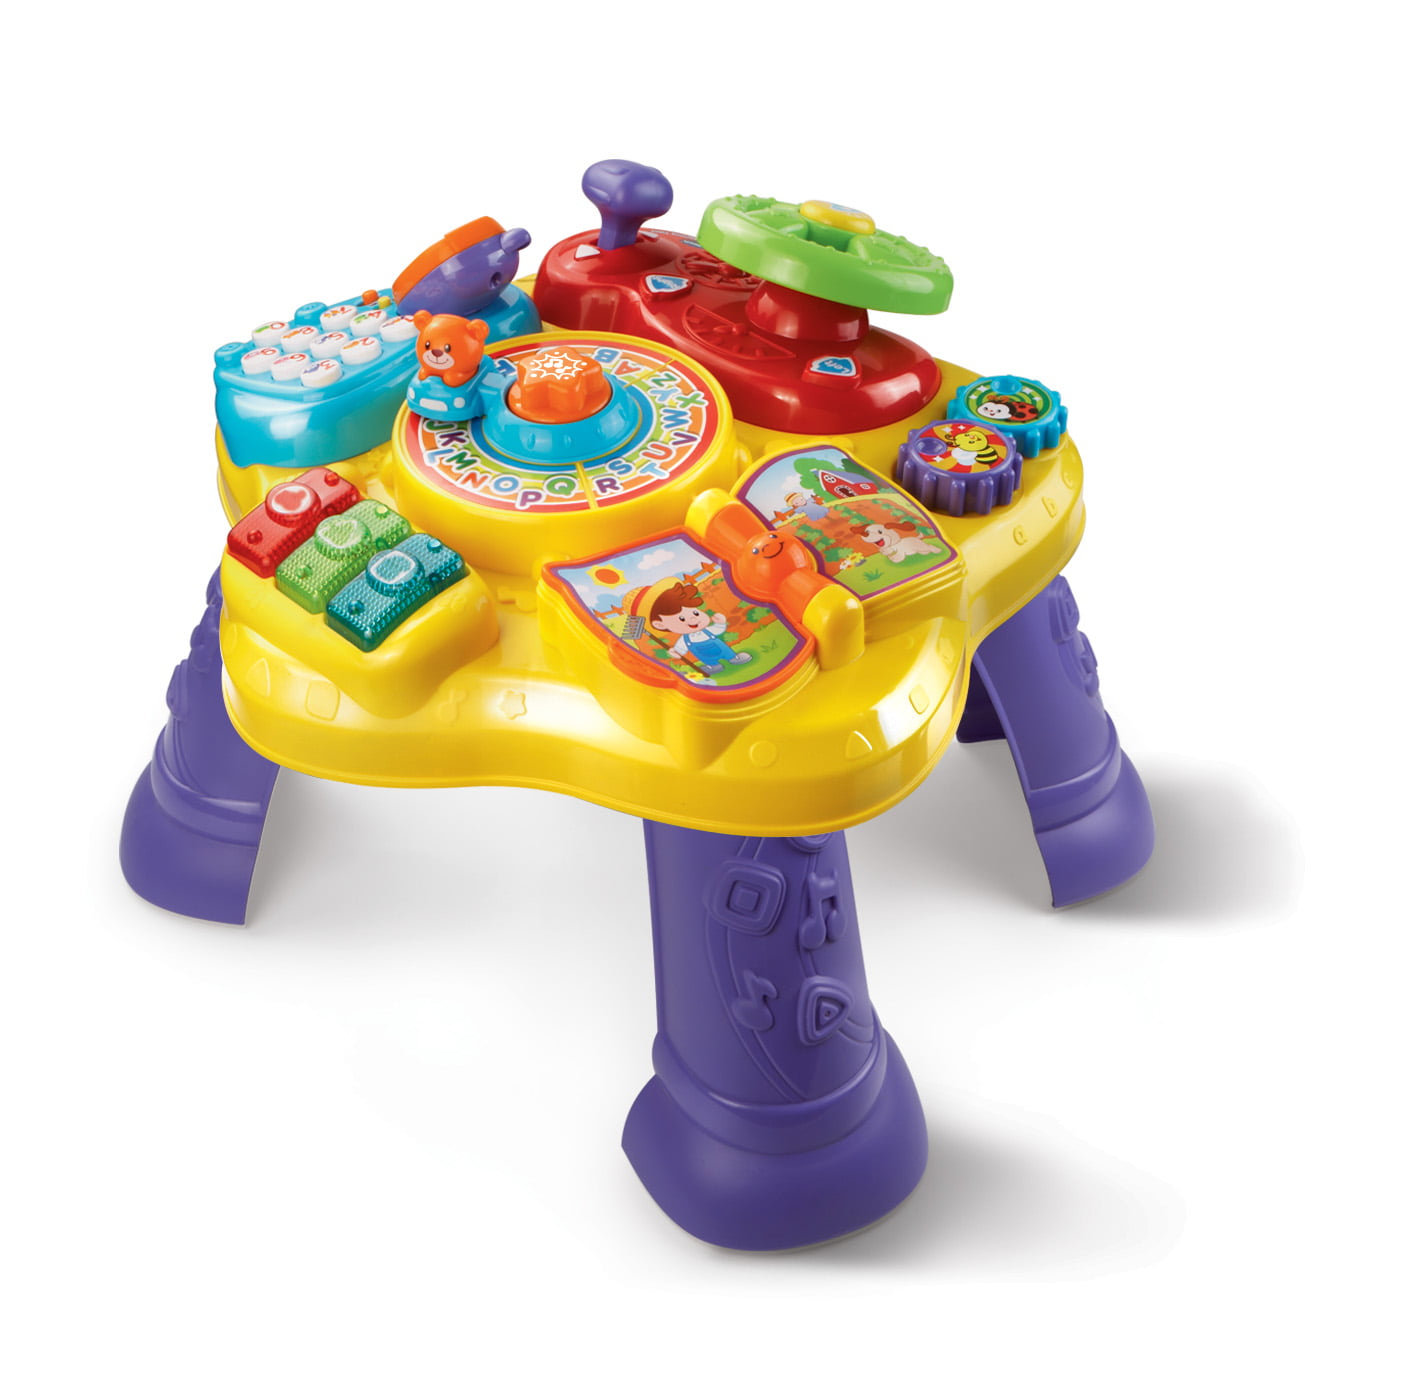 VTech Magic Star Learning Table, English and Spanish Learning Toy